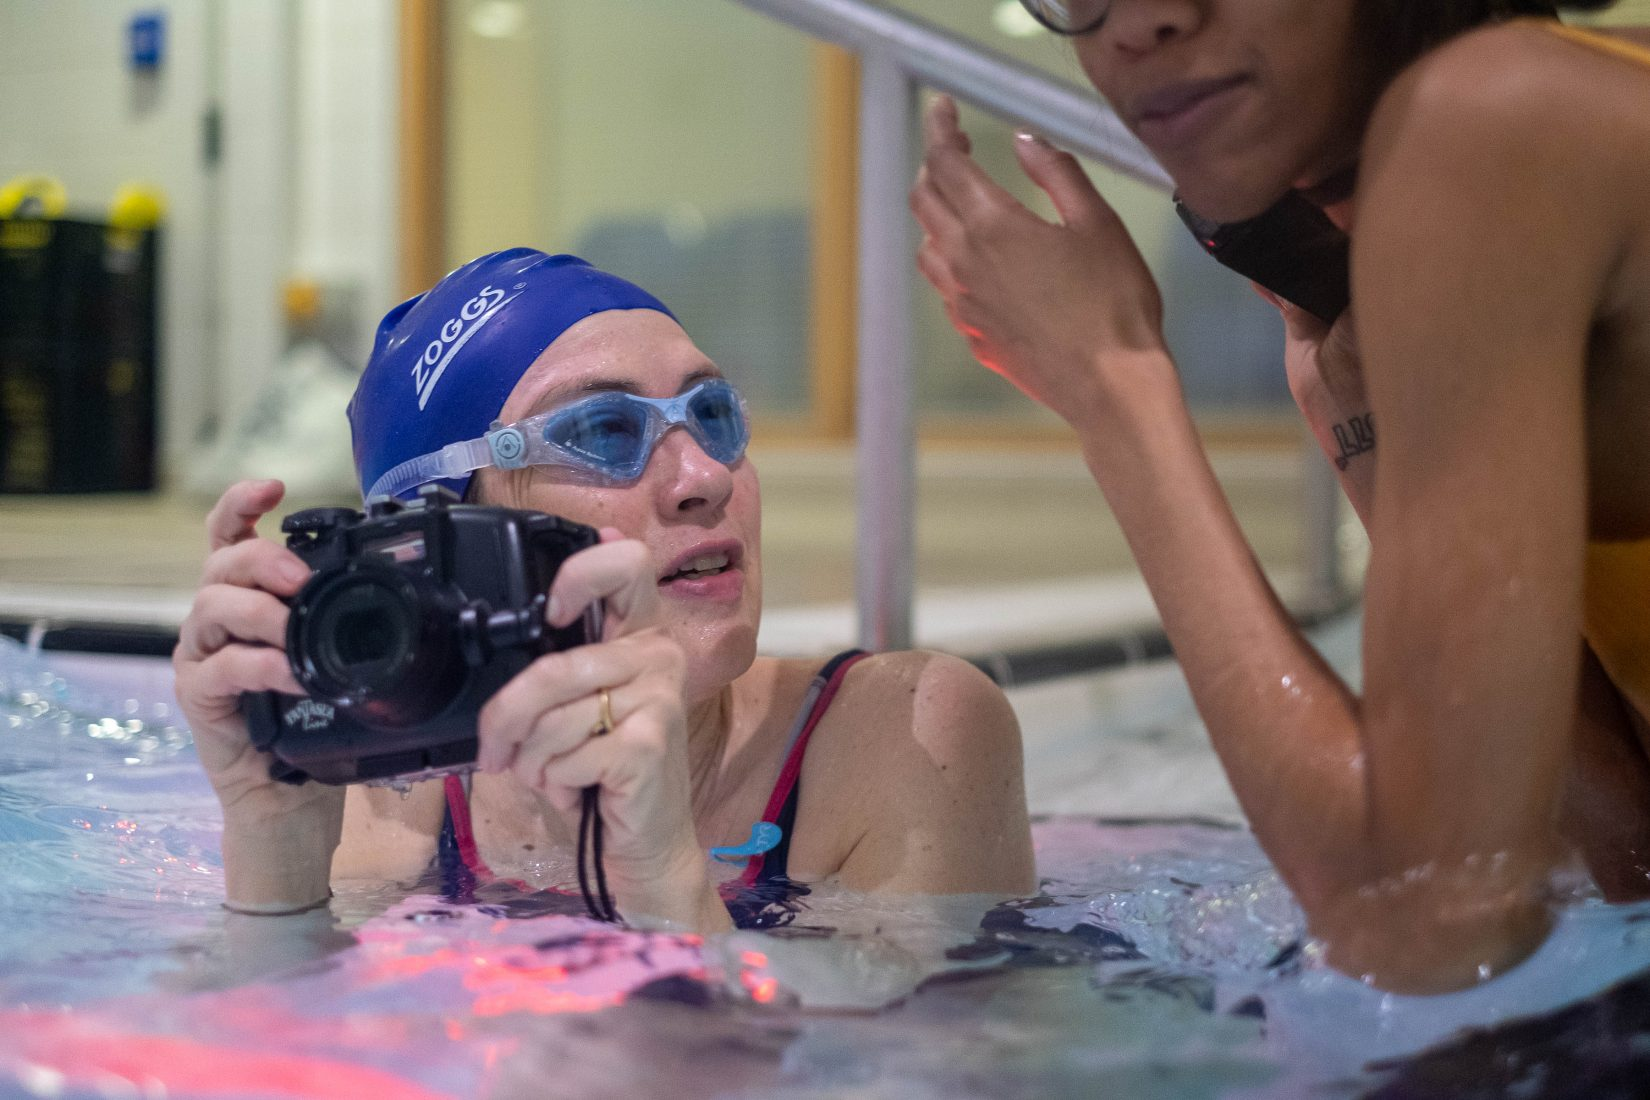 A woman wearing a swimming cap and goggles is in a pool, holding a camera in both hands just above the water. She looks at the woman beside her in the pool.